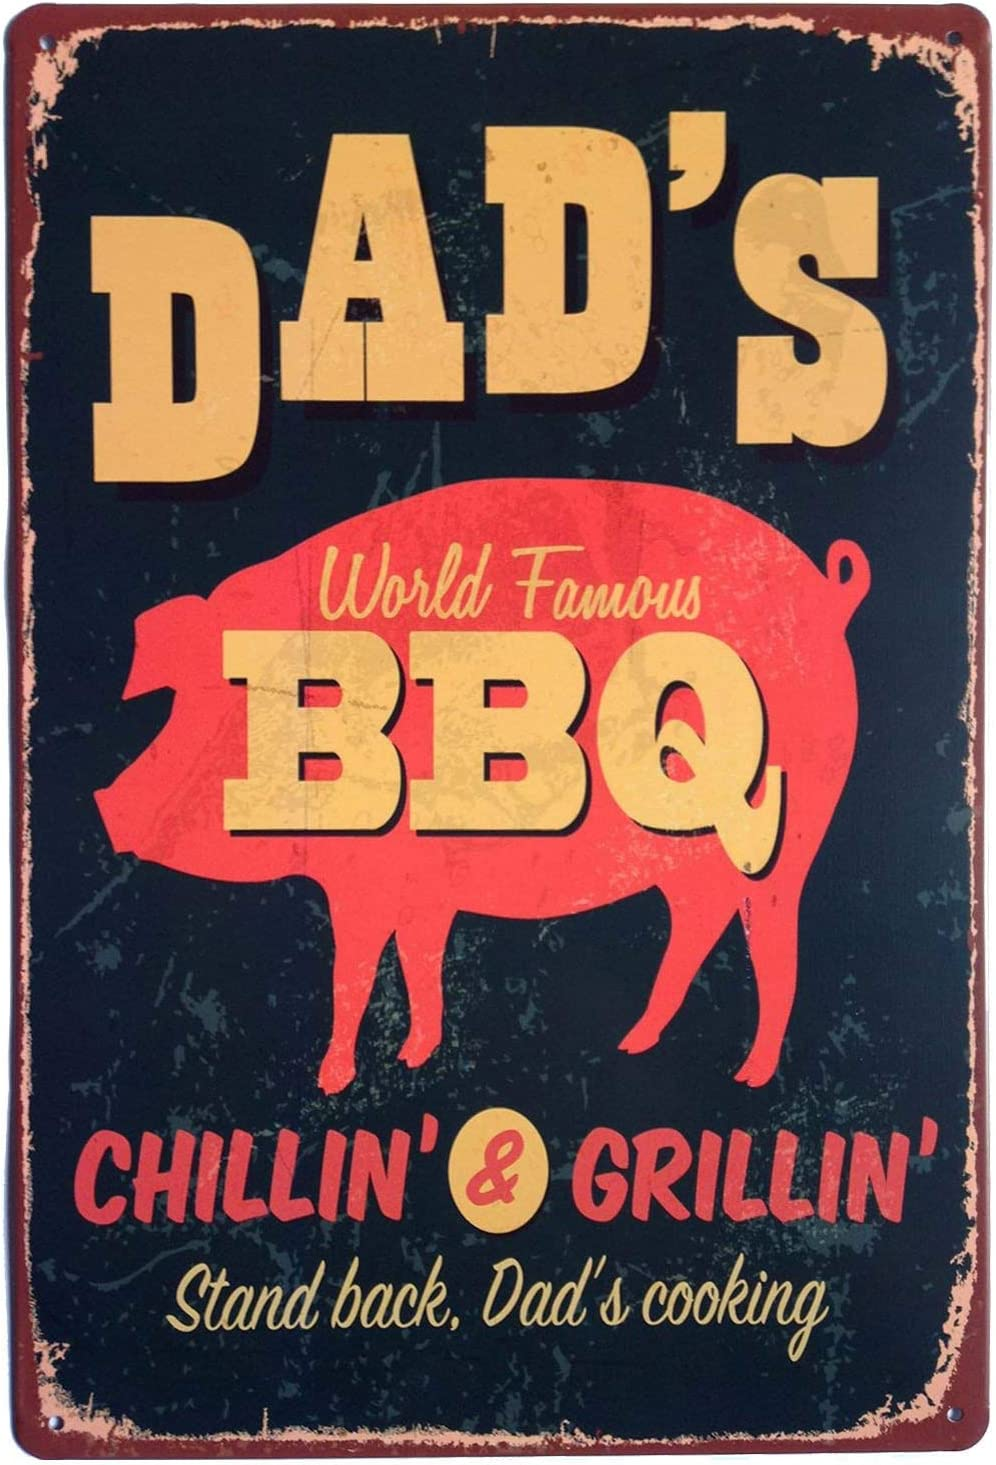 Dad's BBQ Stand Back Dad's Cooking Vintage Tin Sign Wall Decor 12 x 8